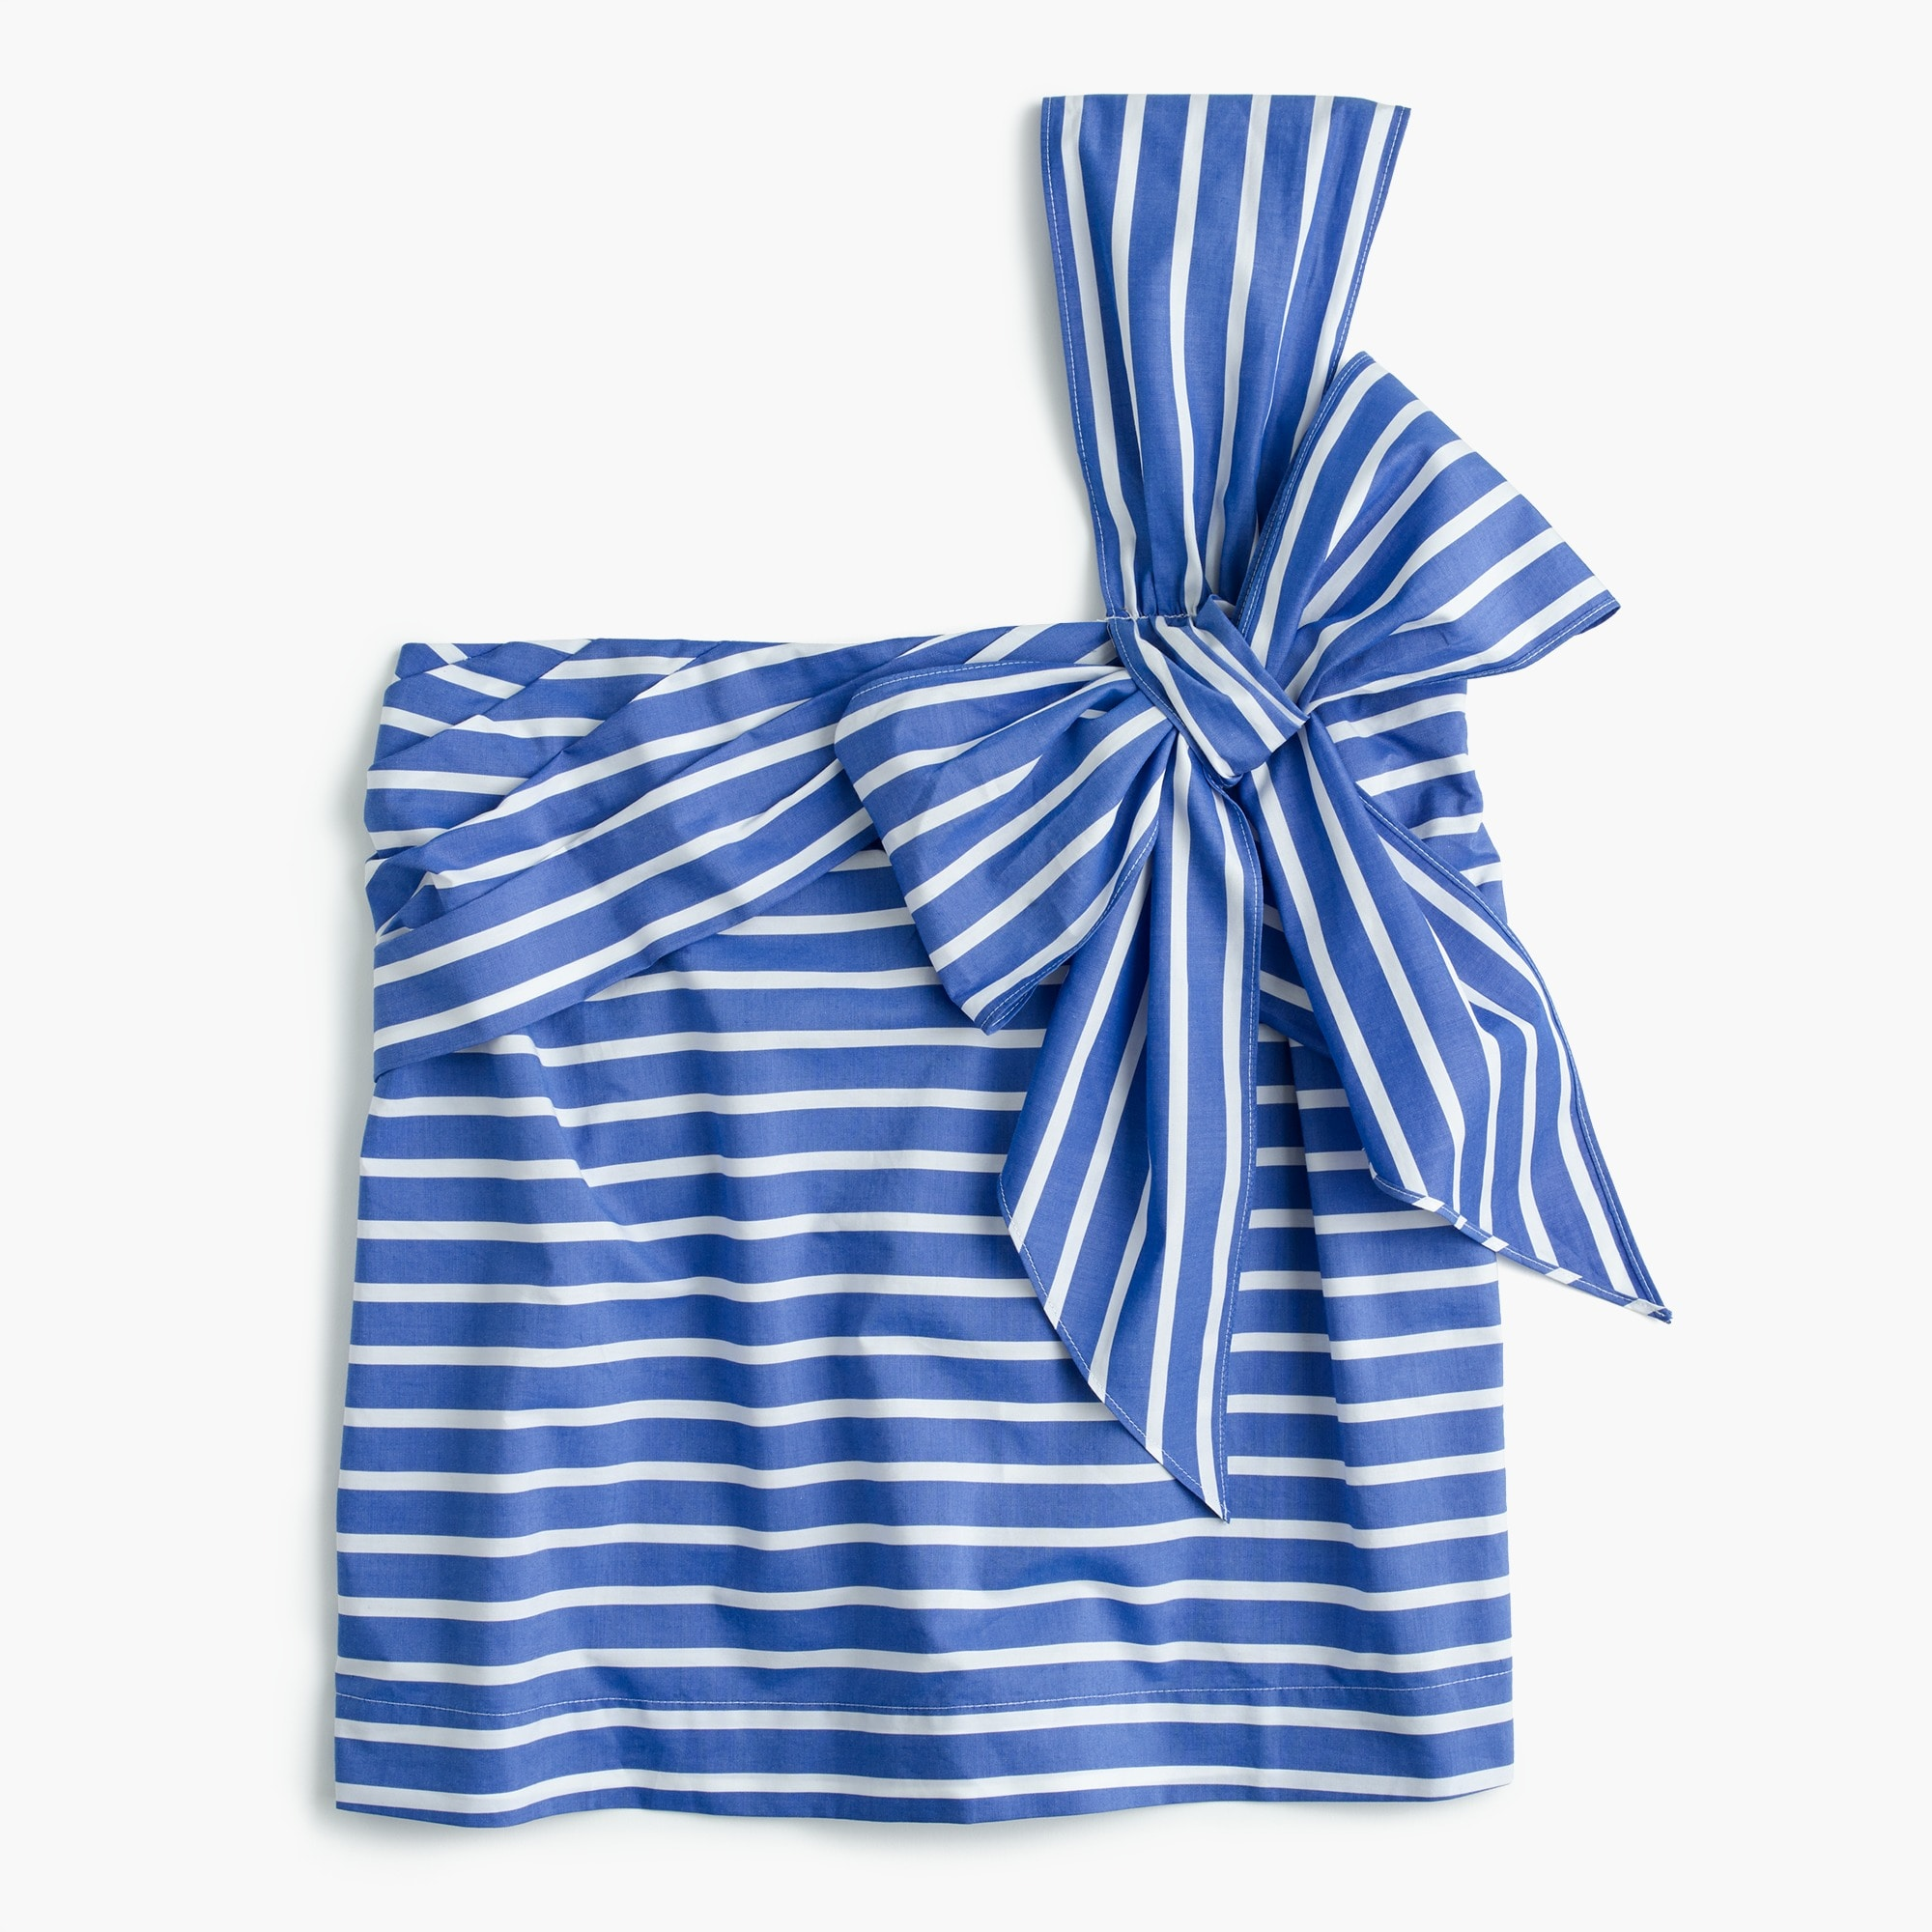 Image 1 for One-shoulder bow top in stripe